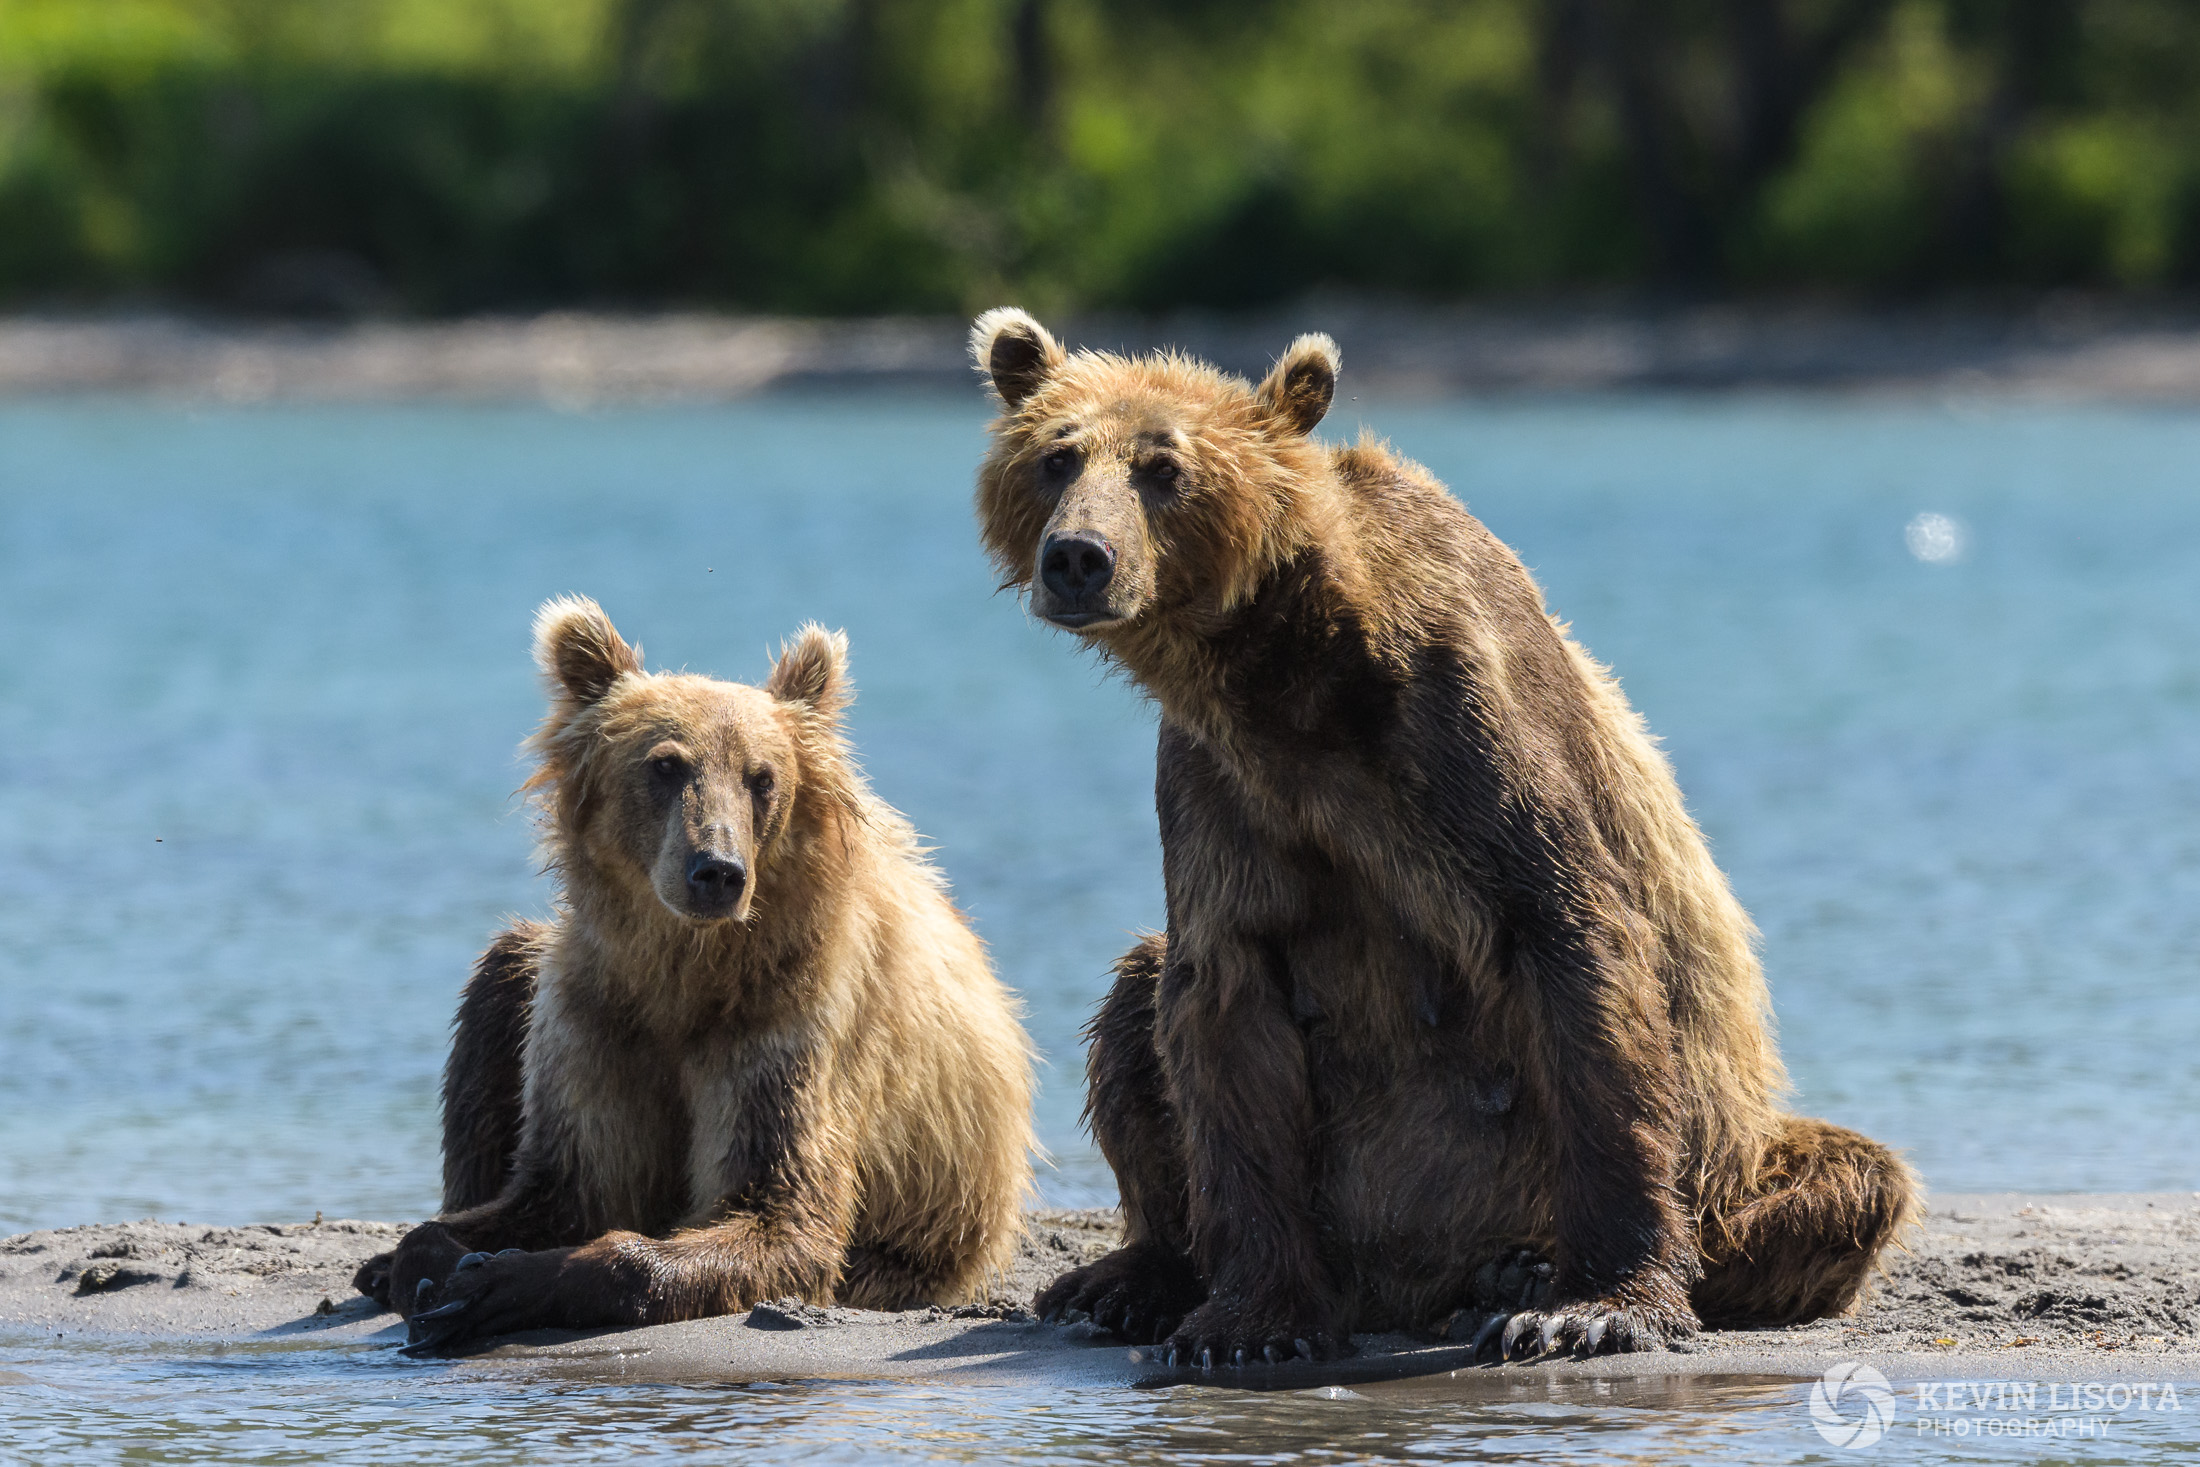 Brown bears at Kurile Lake in Kamchatka, Russia.